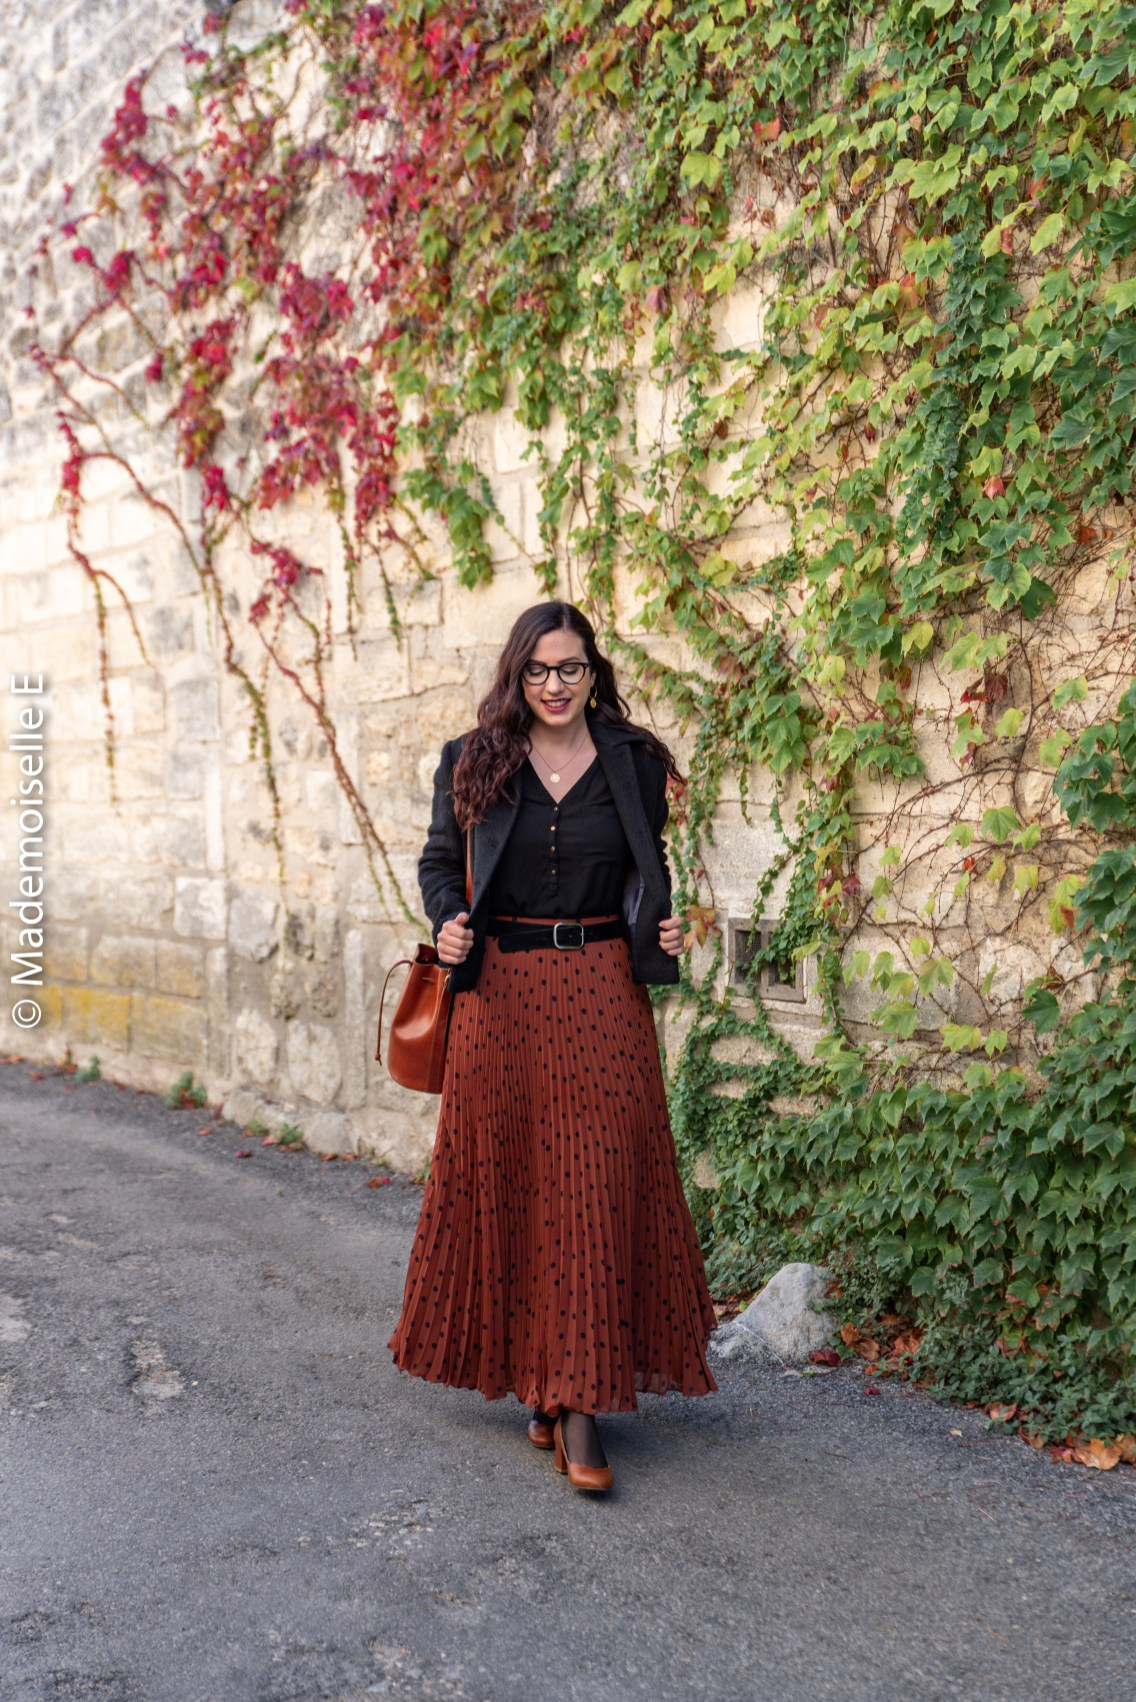 jupe_plissee_a_pois_sezane_inspiration_automne_12_mademoiselle